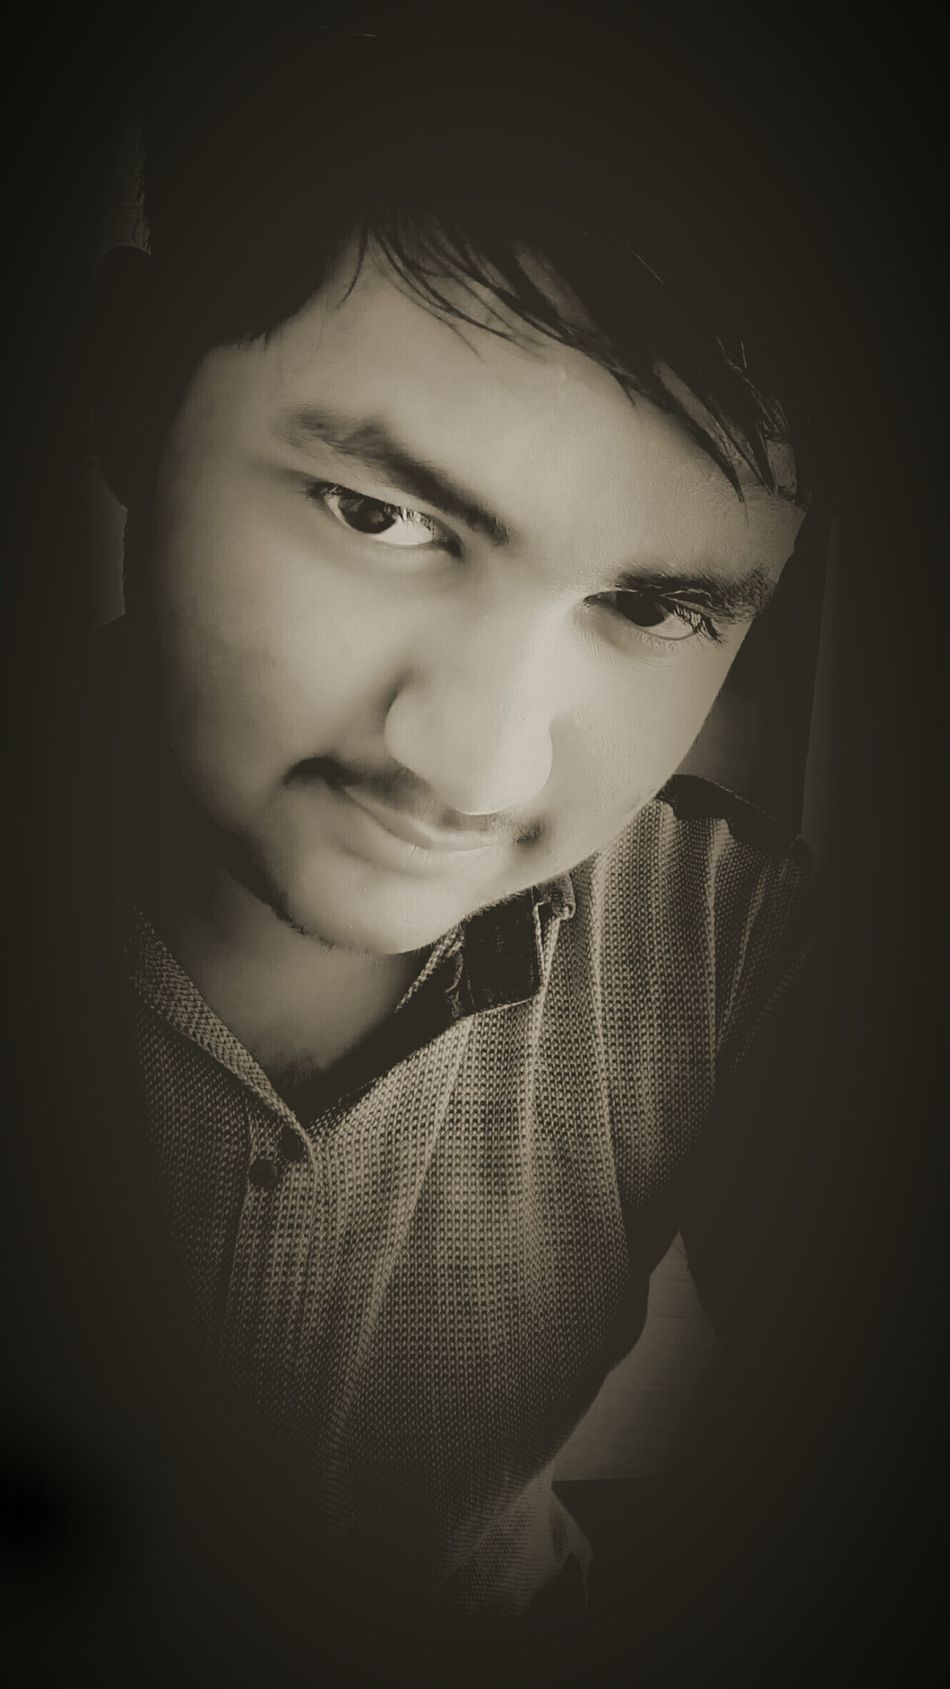 I m not handsome but i can give a hand to someone , who need 😊☺☺Simple Boy Average Boy Cute? Like ? Indian Not Handsome Happy Love Good Morning Fun Skype Whatever Sunlight Kikme Kik? Boy Friendship ? Friend Messge